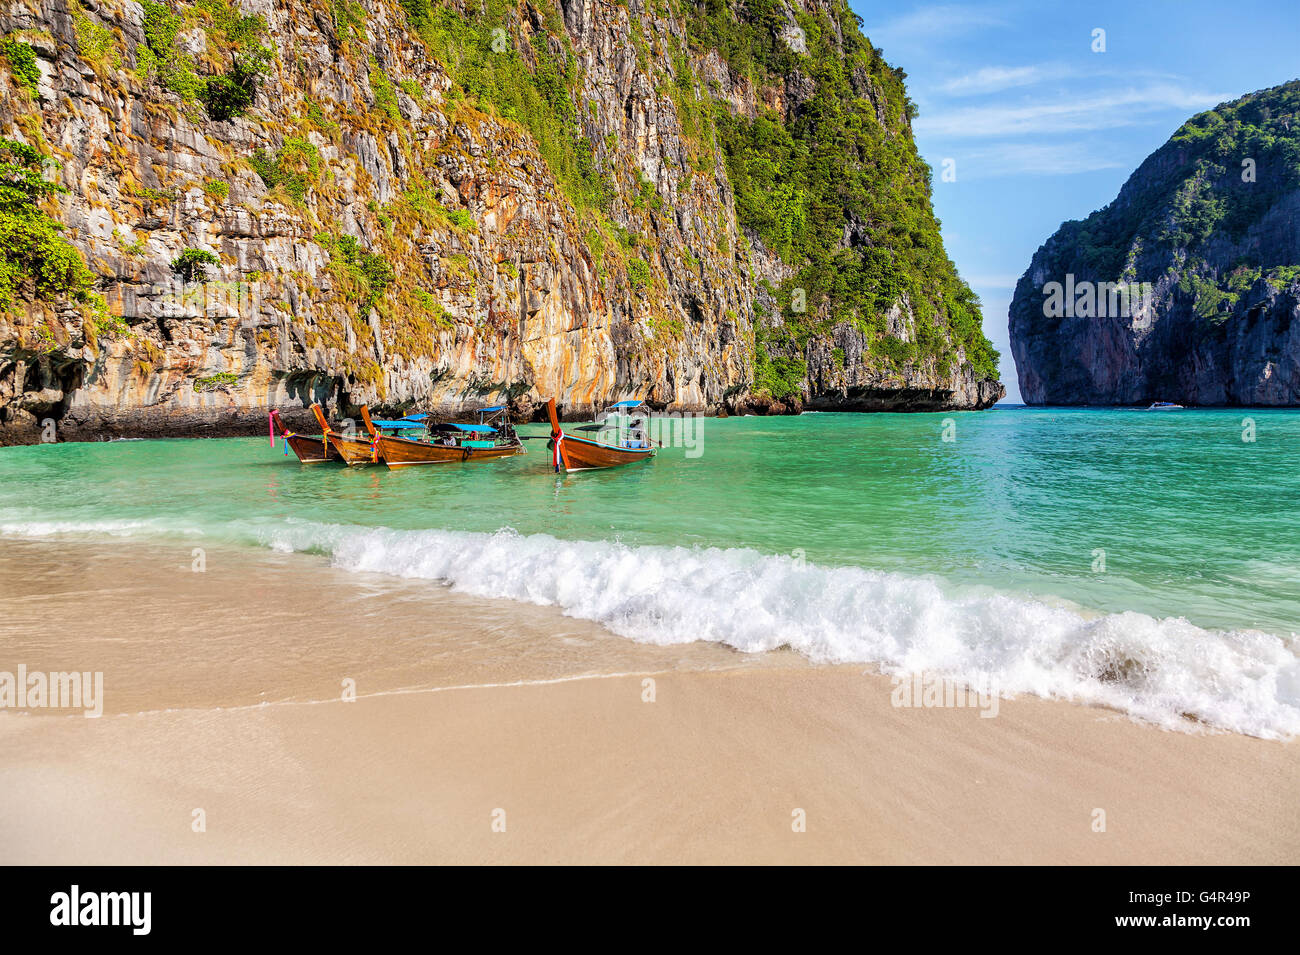 The famous beach of Maya on the island of Phi-Phi-Le in Thailand - Stock Image